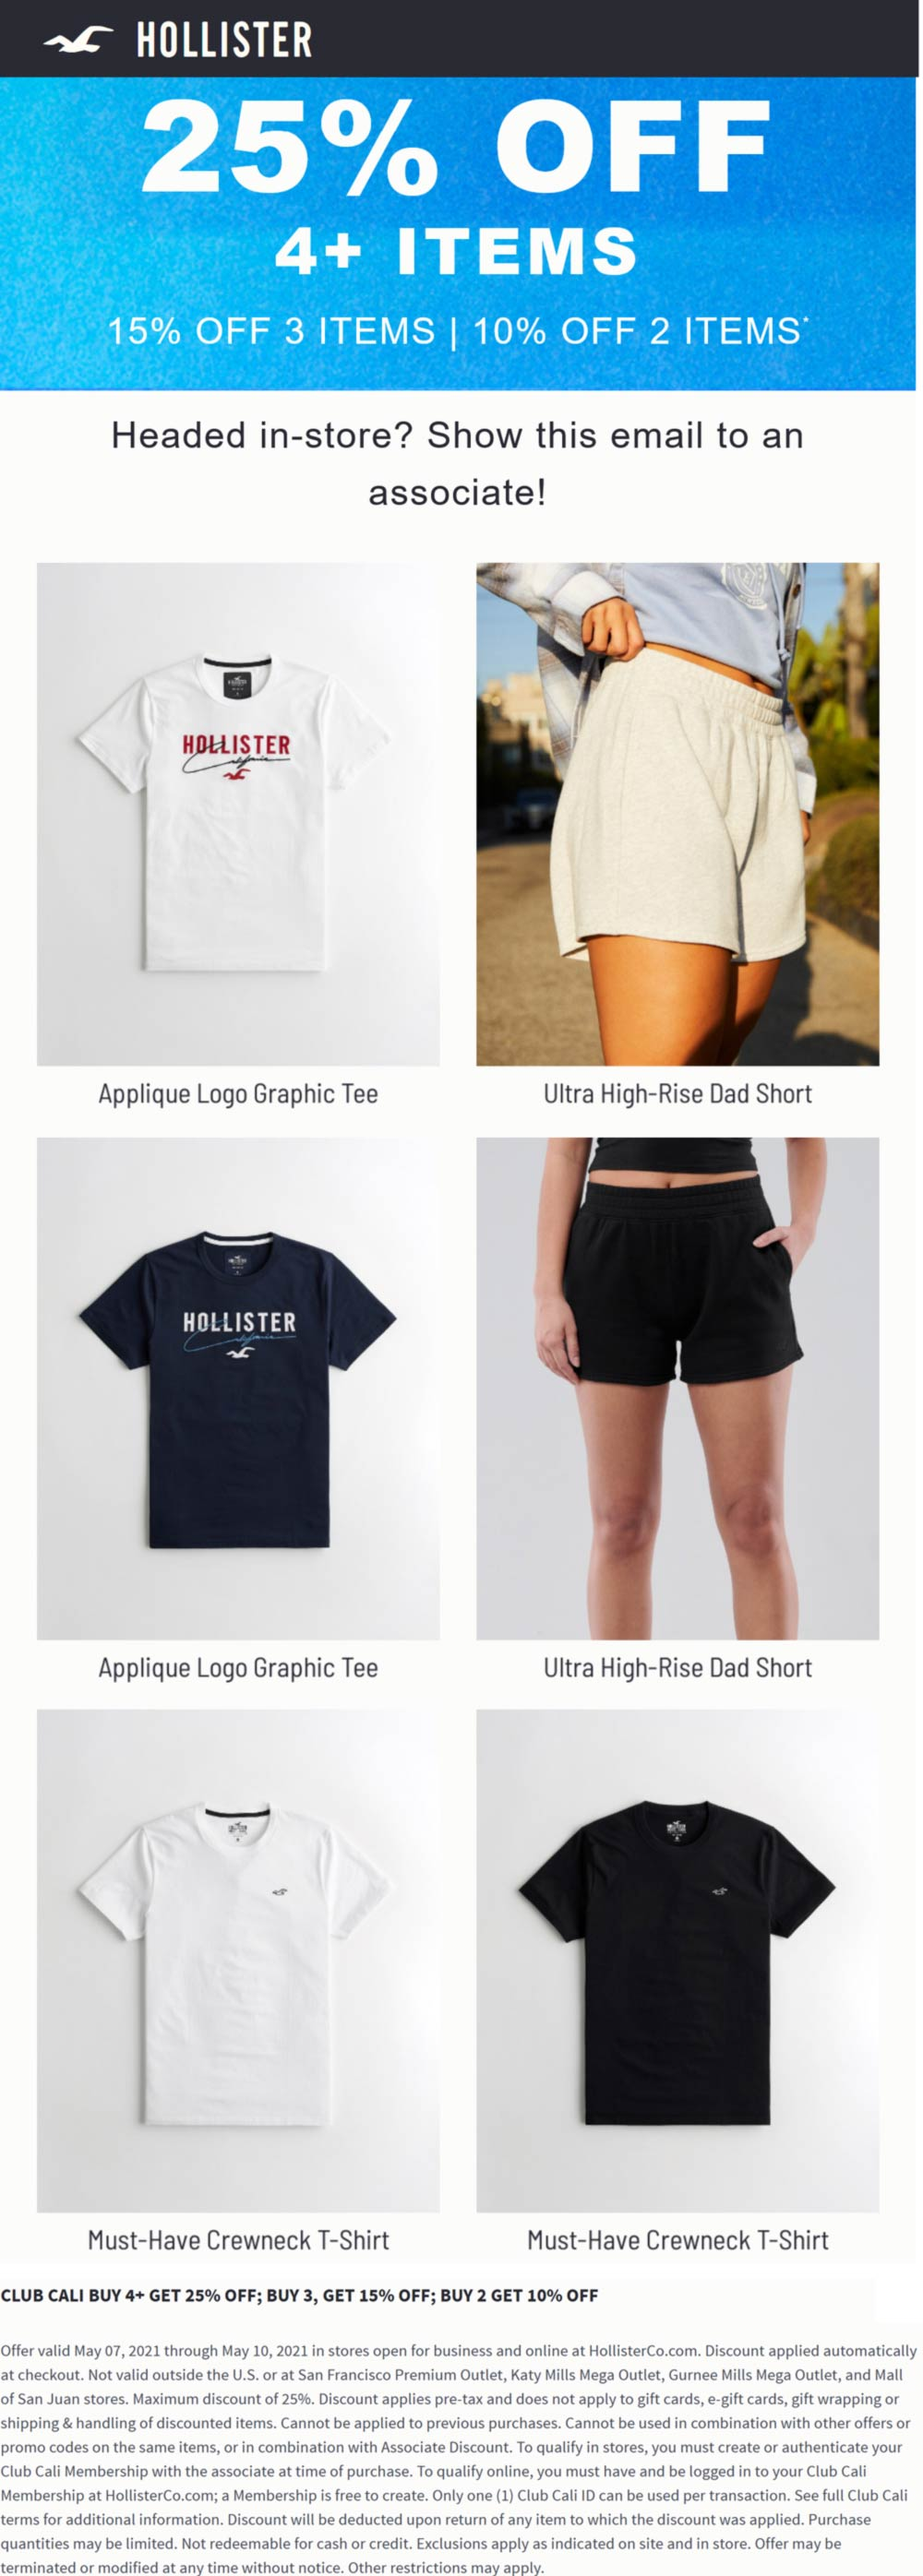 Hollister stores Coupon  10-25% off 2+ items at Hollister, ditto online #hollister